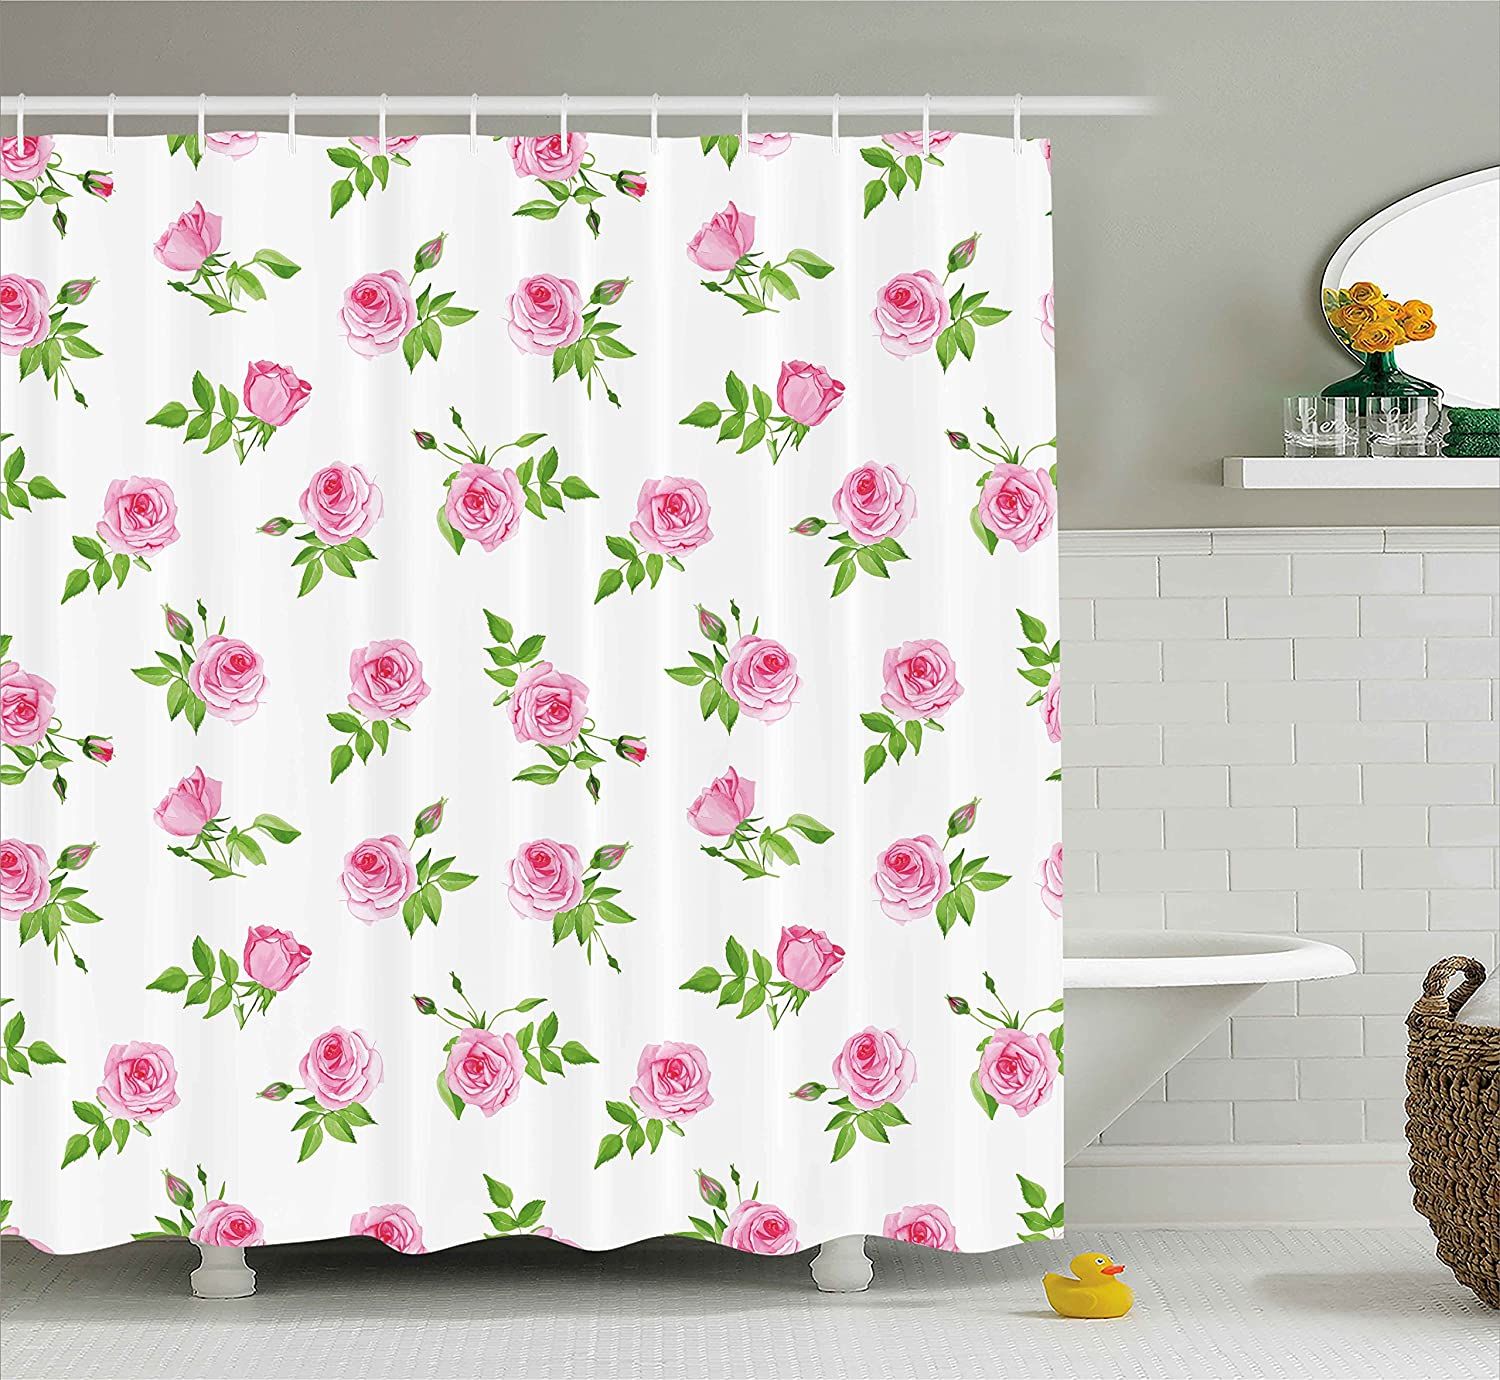 Ambesonne Vintage Shower Curtain By Spring Season Little Flowers Roses With Leaves Classic Image Fabric Bathroom Decor Set Hooks 75 Inches Long